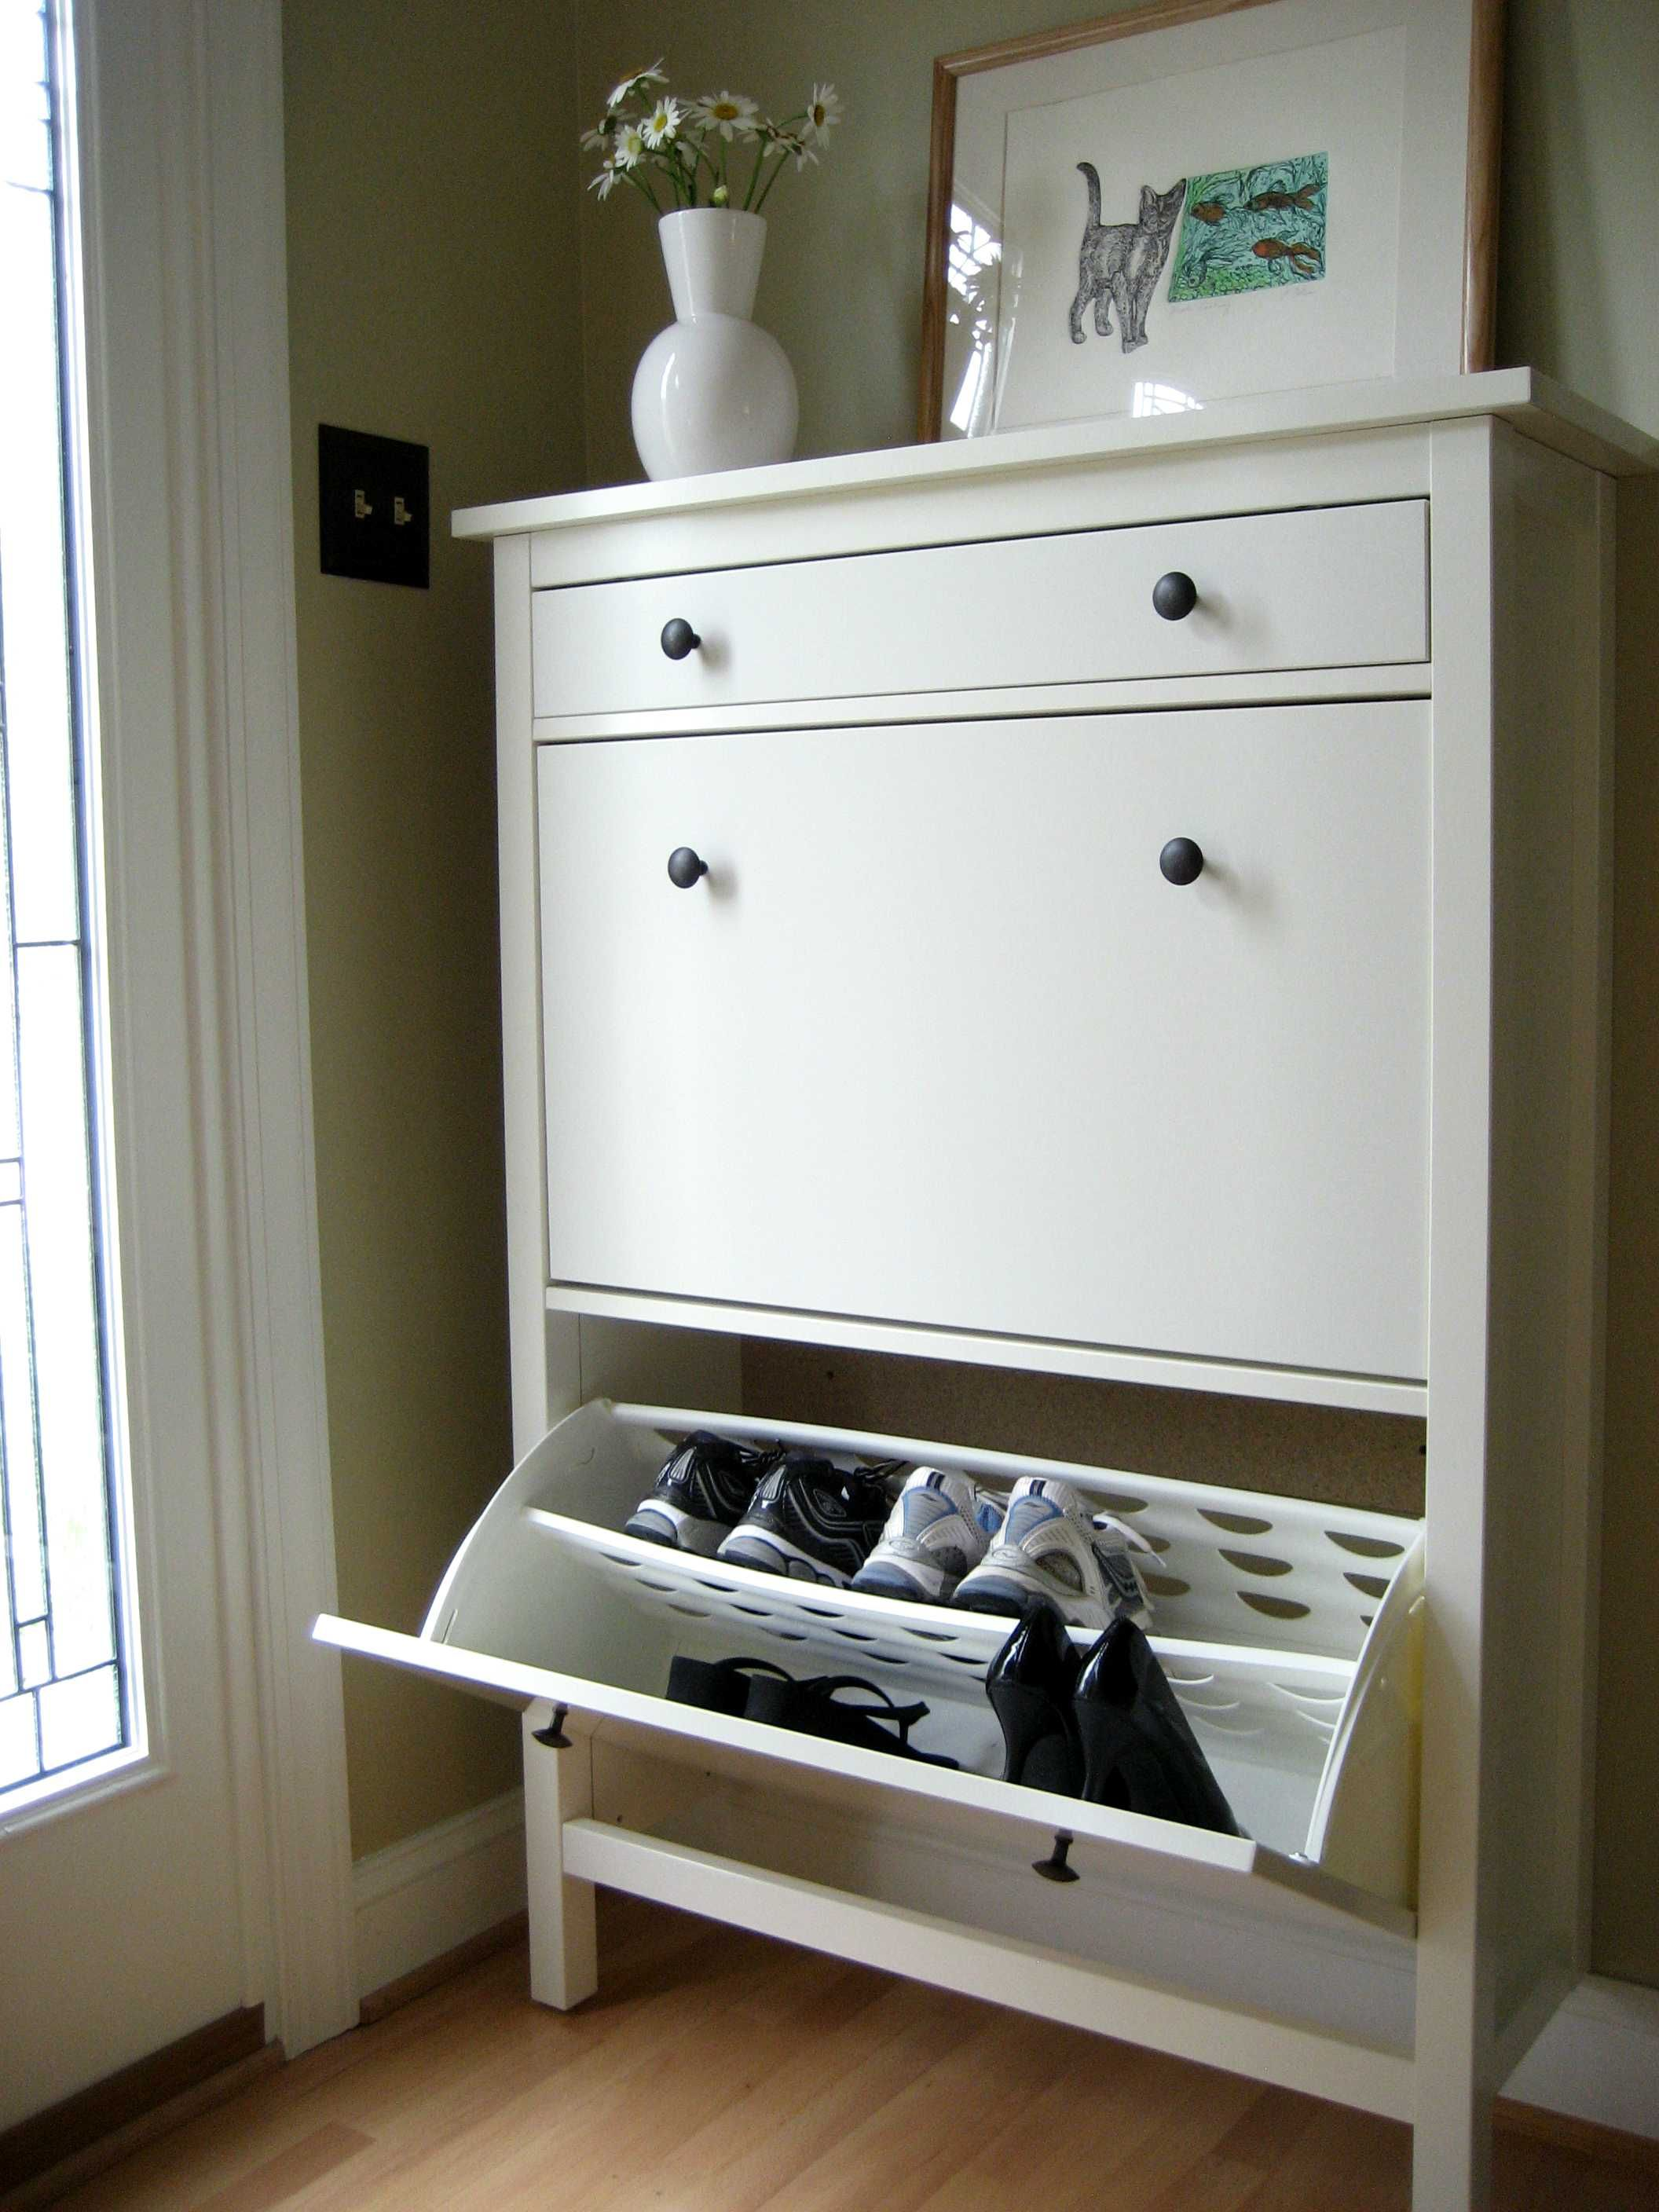 Kitchen Storage Cabinets Free Standing Design Idea And Decor ...